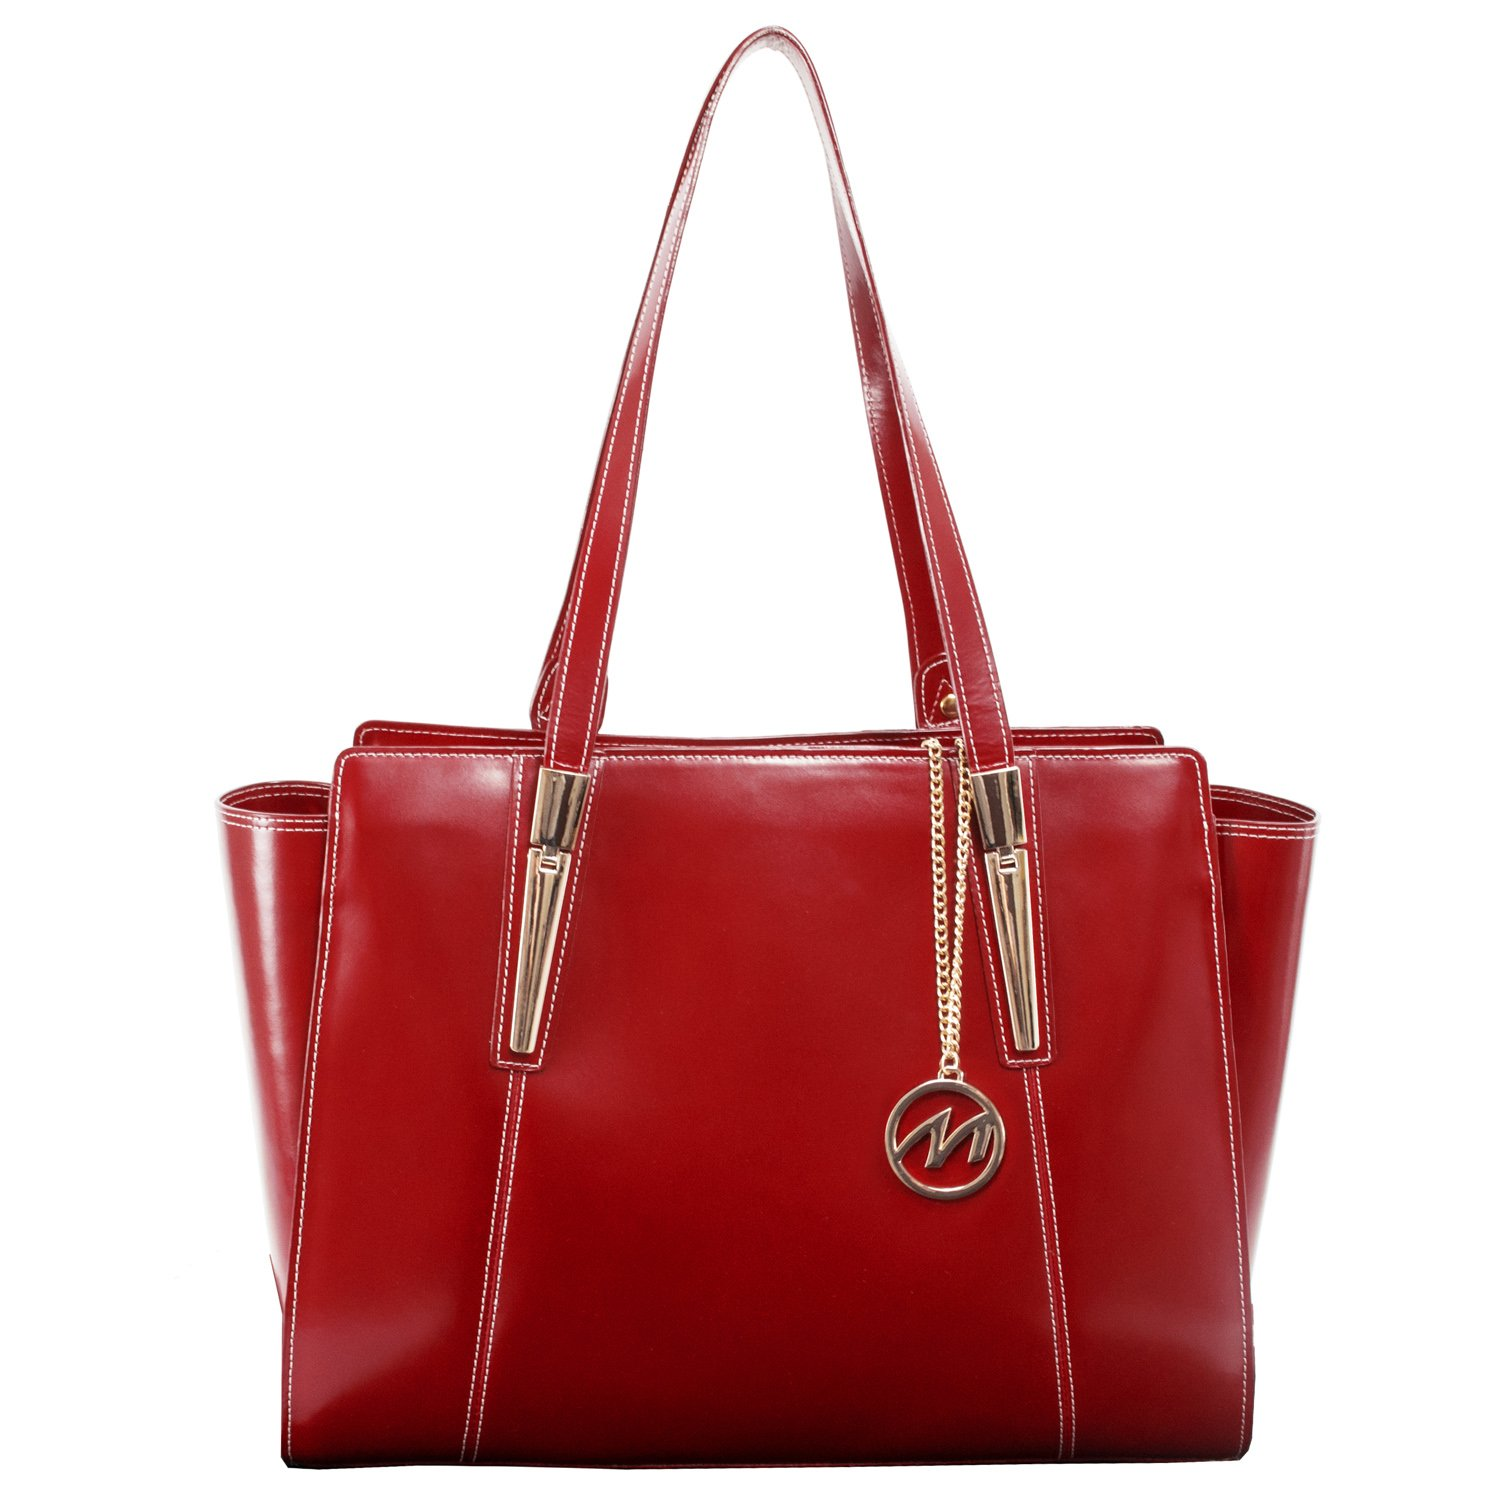 Women's Business Tote, Leather, Small, Red - ALDORA | McKlein